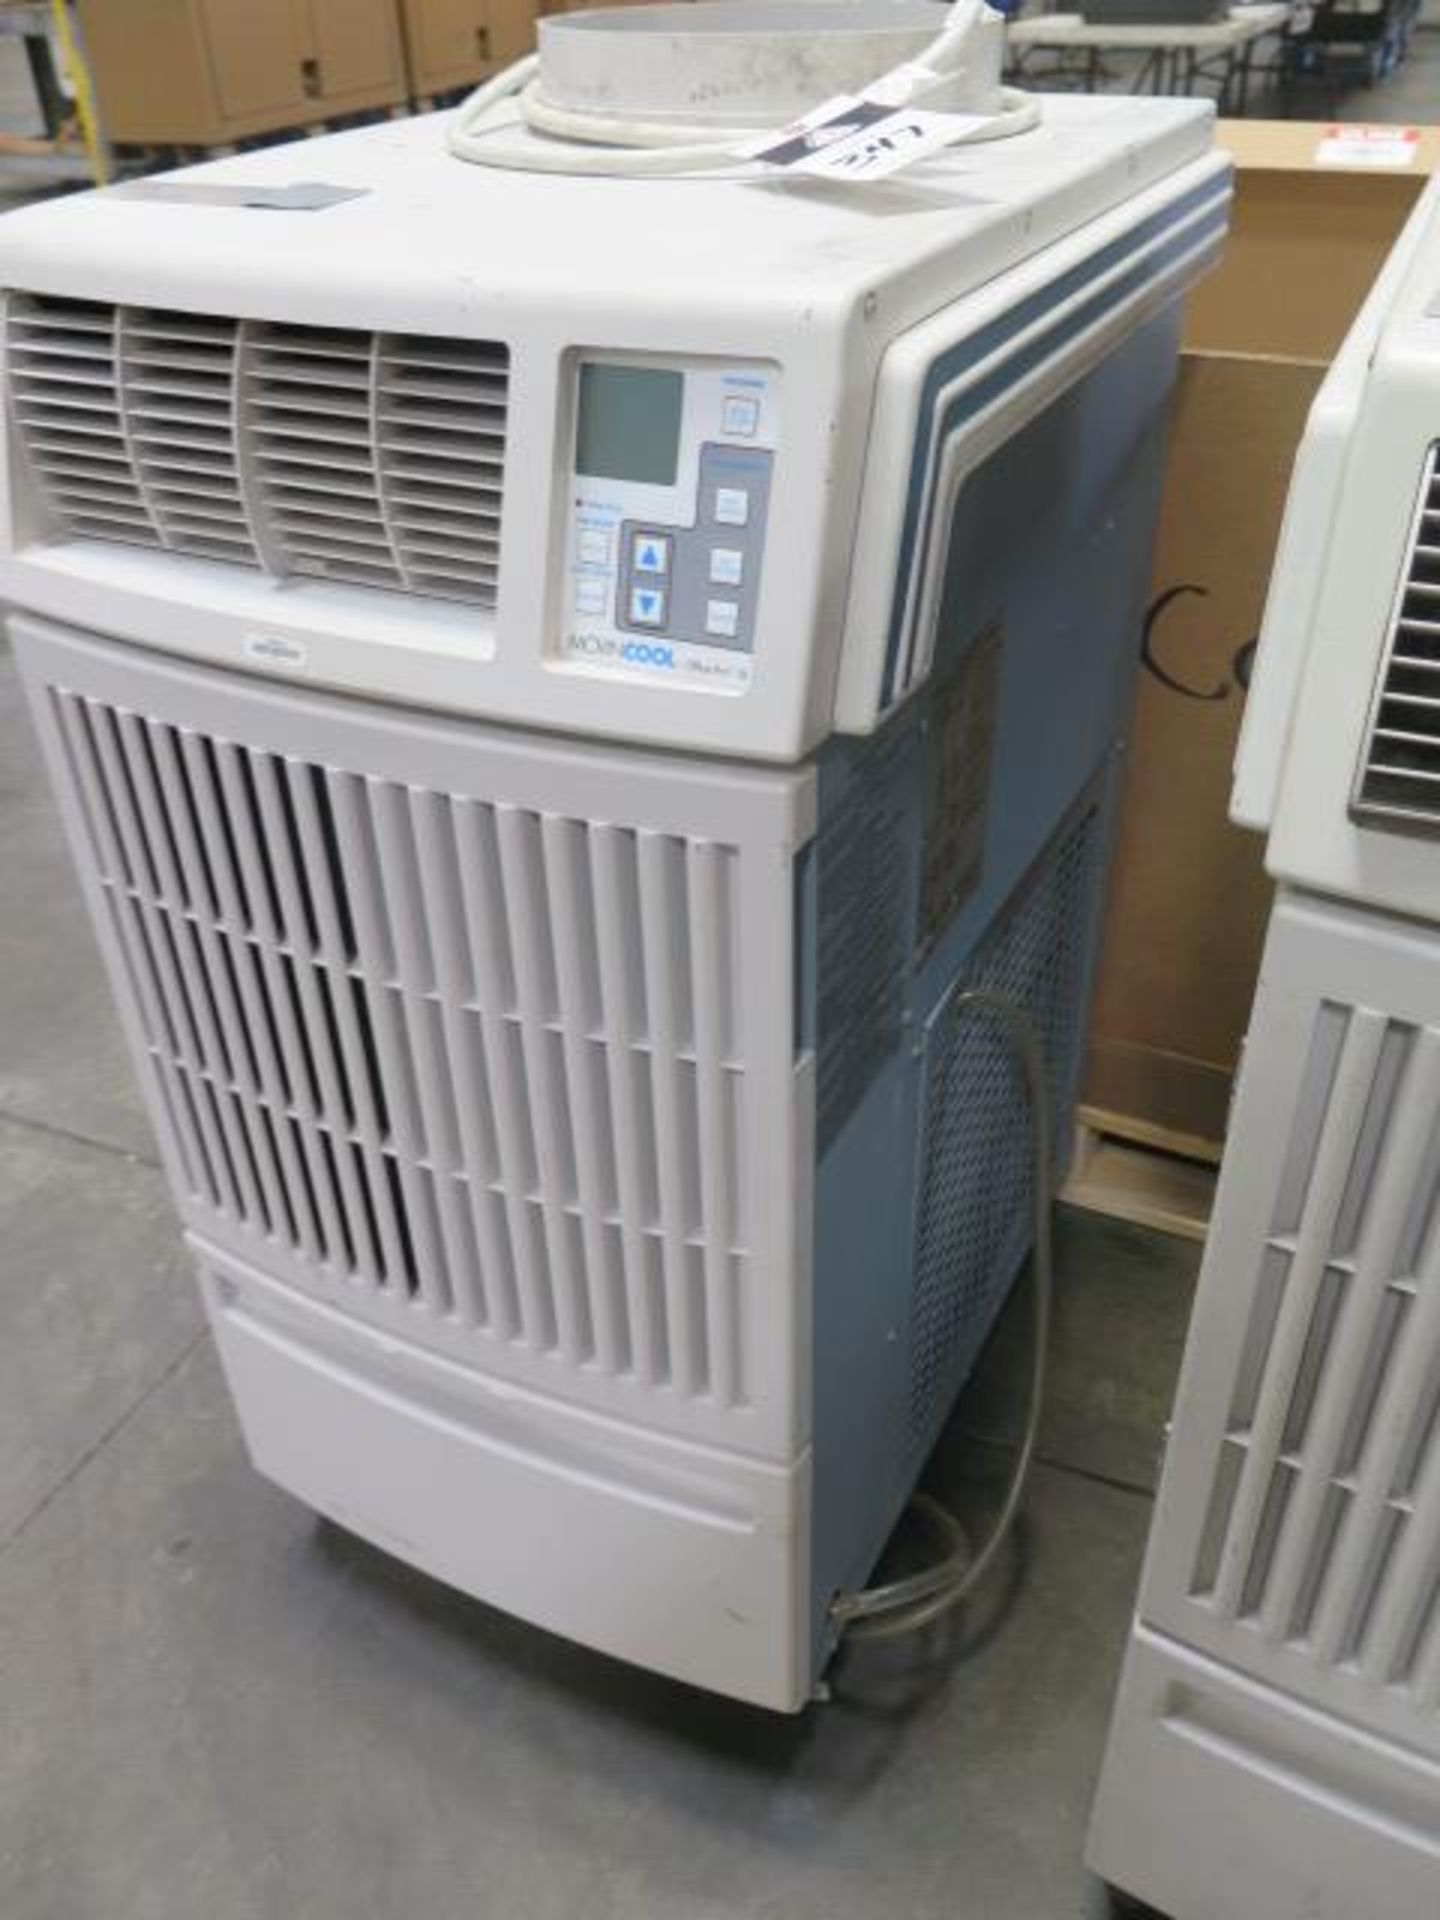 MovinCool Office Pro 18 Portable AC Unit (SOLD AS-IS - NO WARRANTY) - Image 2 of 6